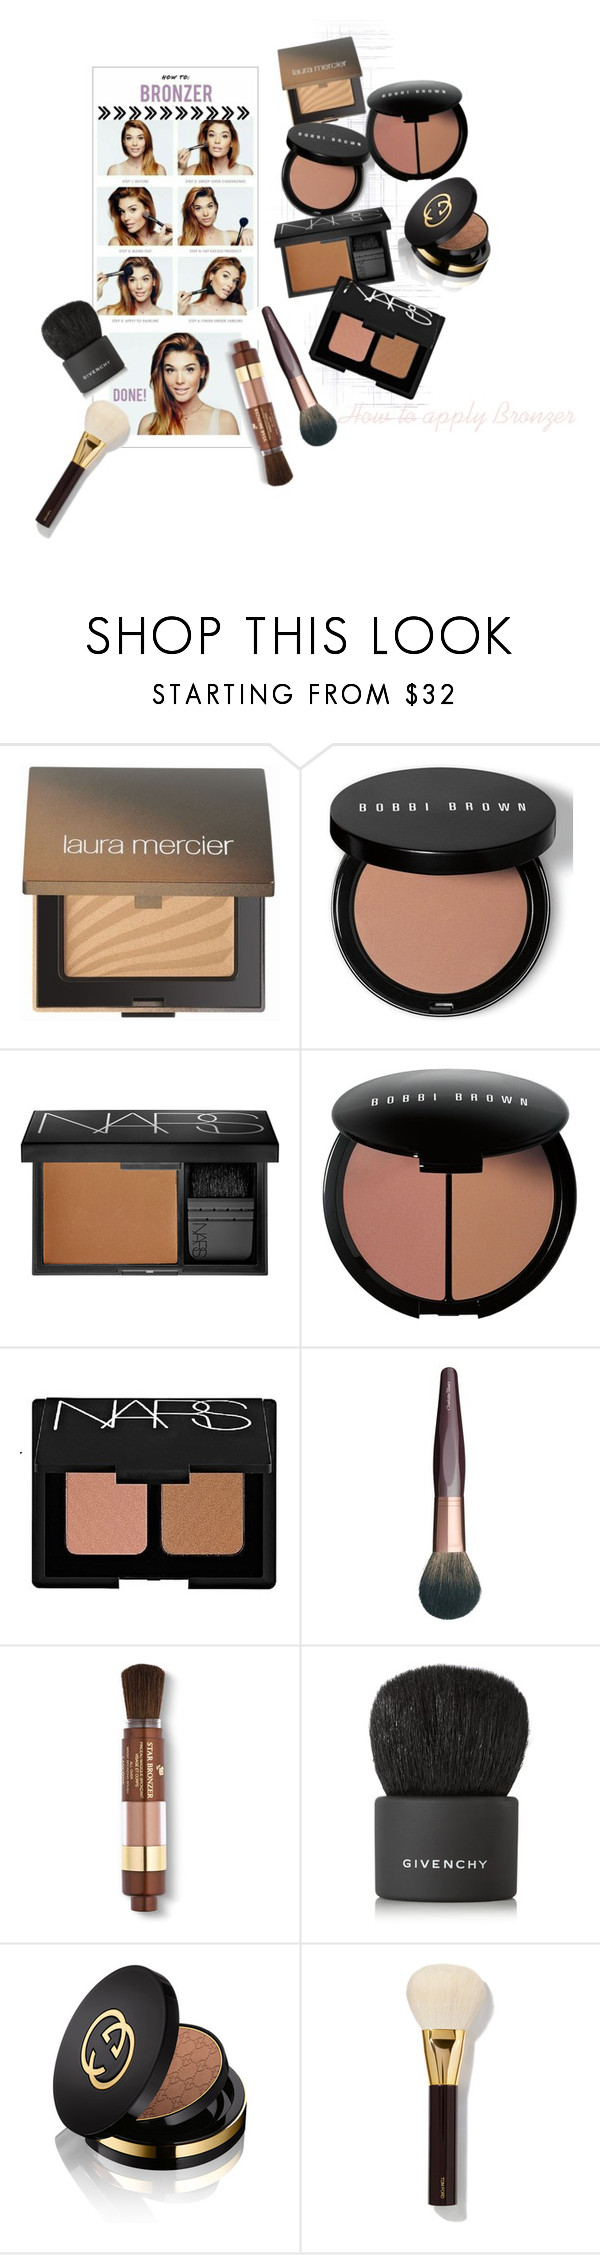 """""""Sunkissed"""" by emi-the-queen ❤ liked on Polyvore featuring beauty, Laura Mercier, Bobbi Brown Cosmetics, NARS Cosmetics, Charlotte Tilbury, Lancôme, Givenchy, Gucci and Tom Ford"""